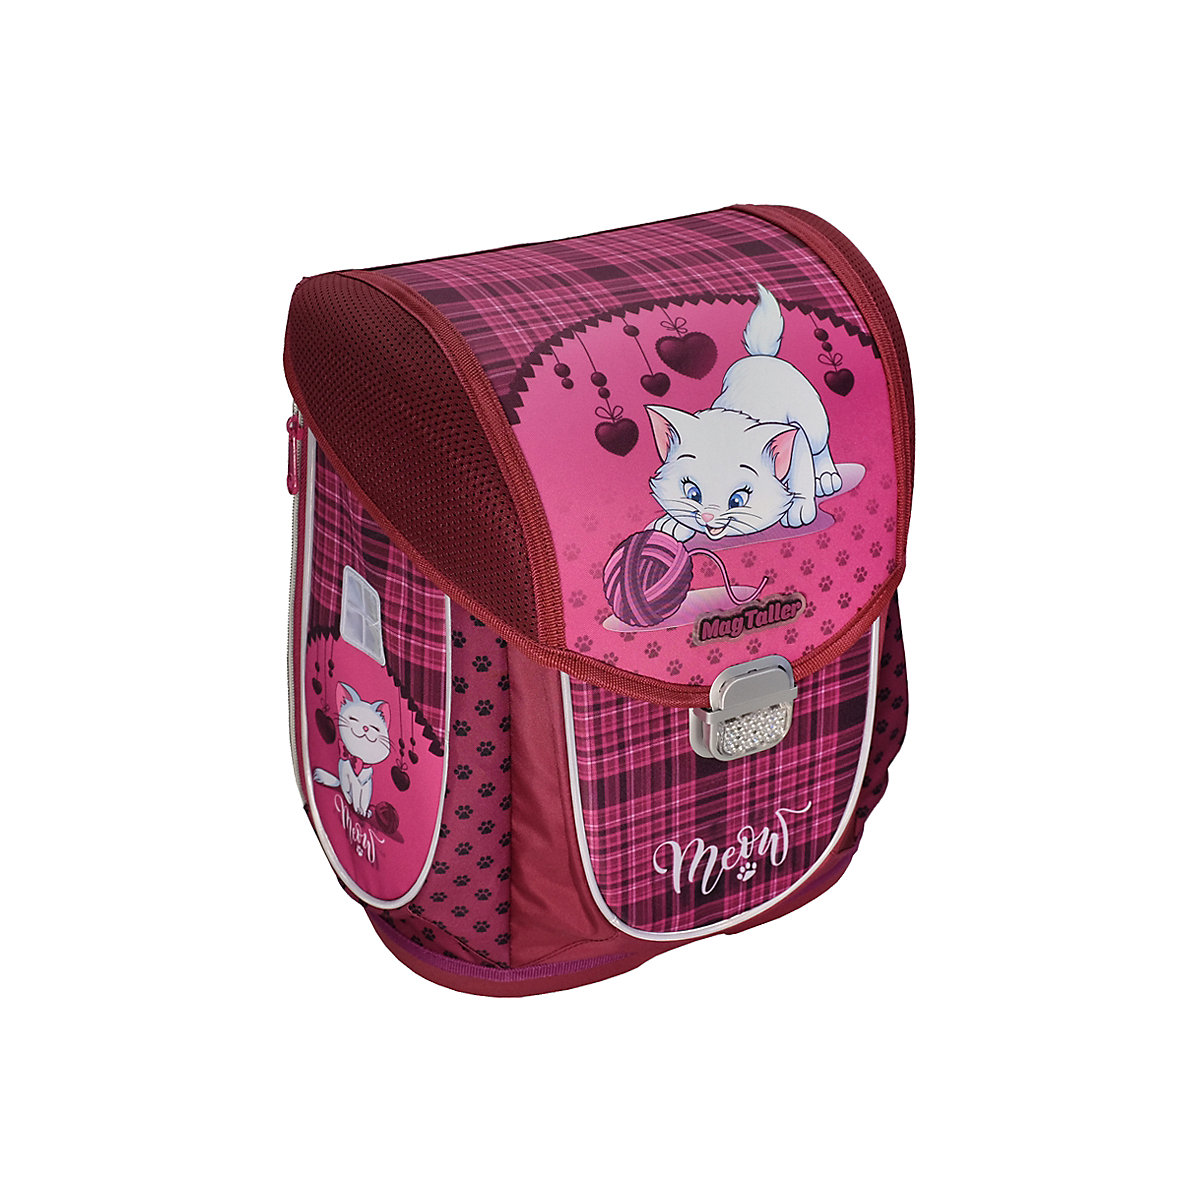 Фото - School Bags MAGTALLER 8315992 schoolbag backpack orthopedic bag for boy and girl animals flowers sy16 black professional waterproof outdoor bag backpack dslr slr camera bag case for nikon canon sony pentax fuji